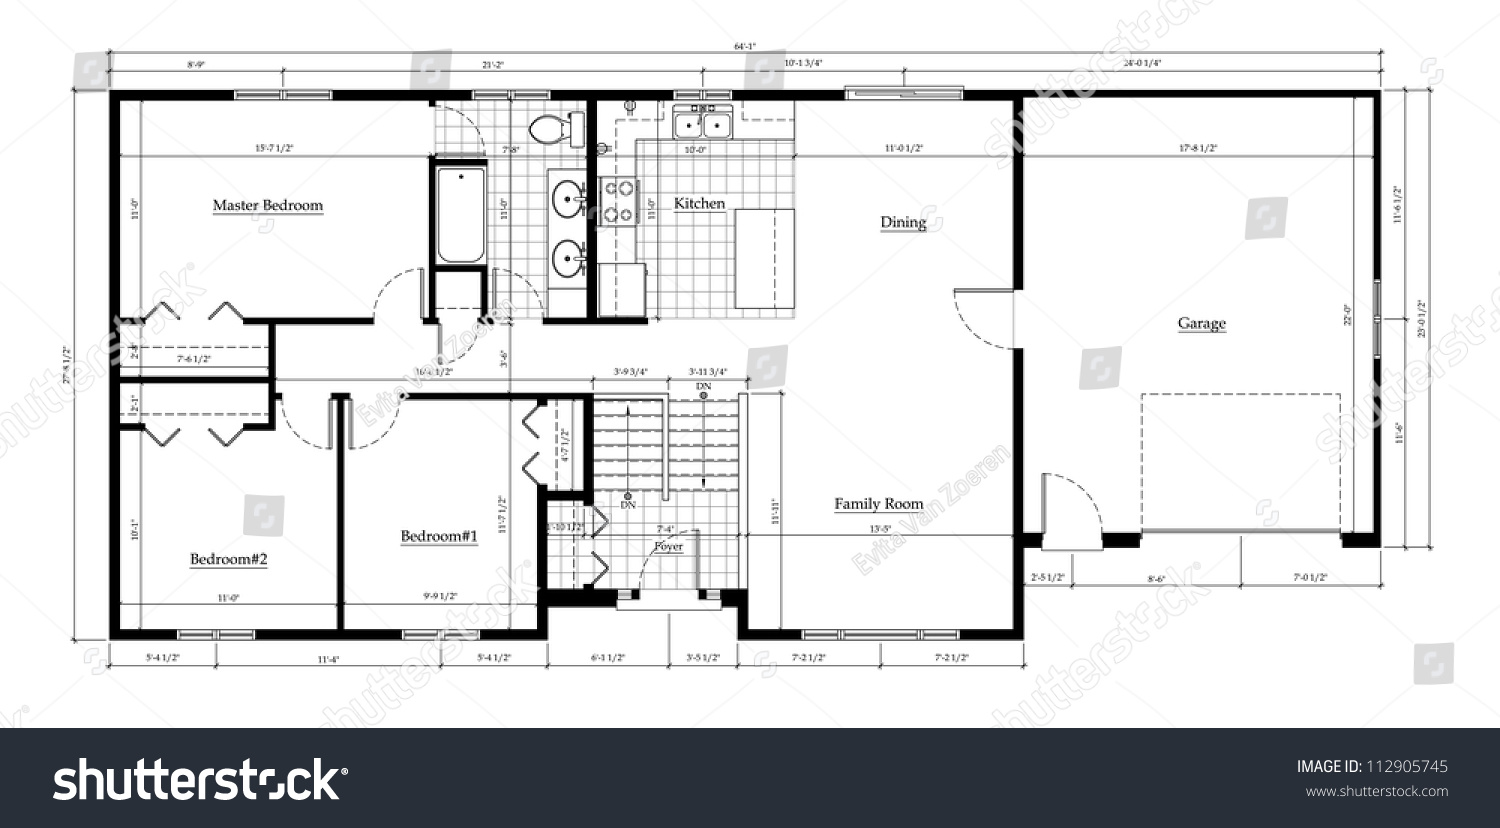 Split Level House Floor Plan With Room Names And Dimensions Stock    Split Level House Floor Plan   Room Names and Dimensions Preview  Save to a lightbox